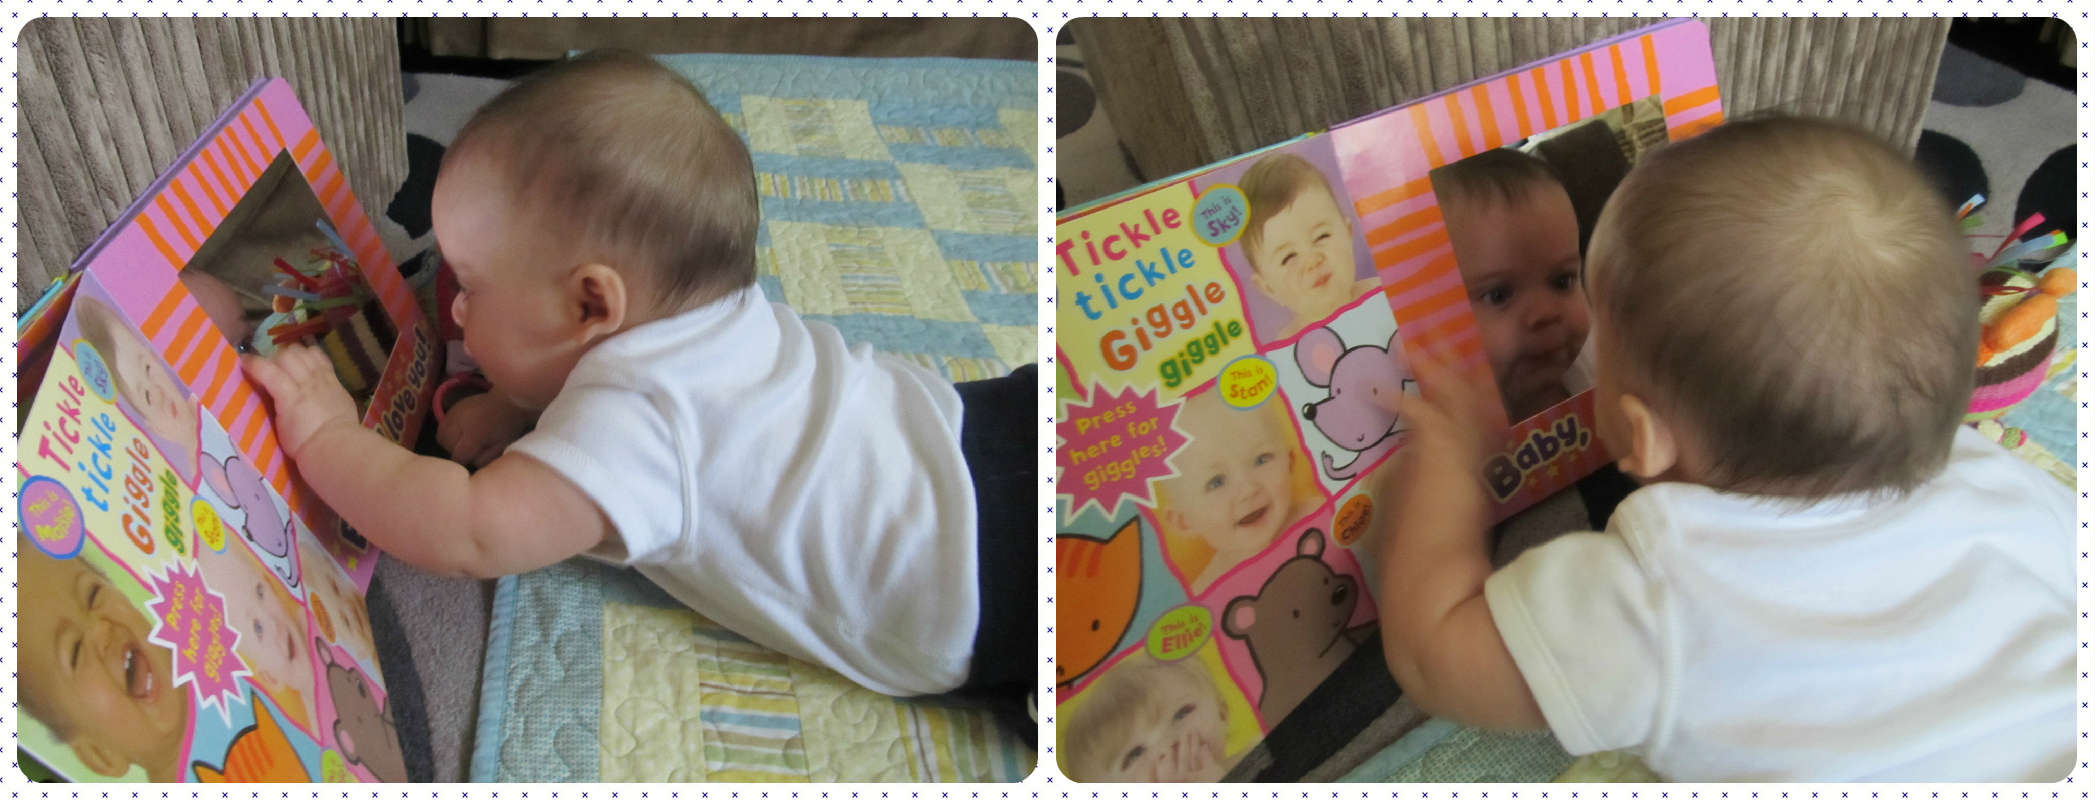 quick easy baby play & activities: Mirror play activity. baby-brain.co.uk psychology resource, perspective and blog on motherhood